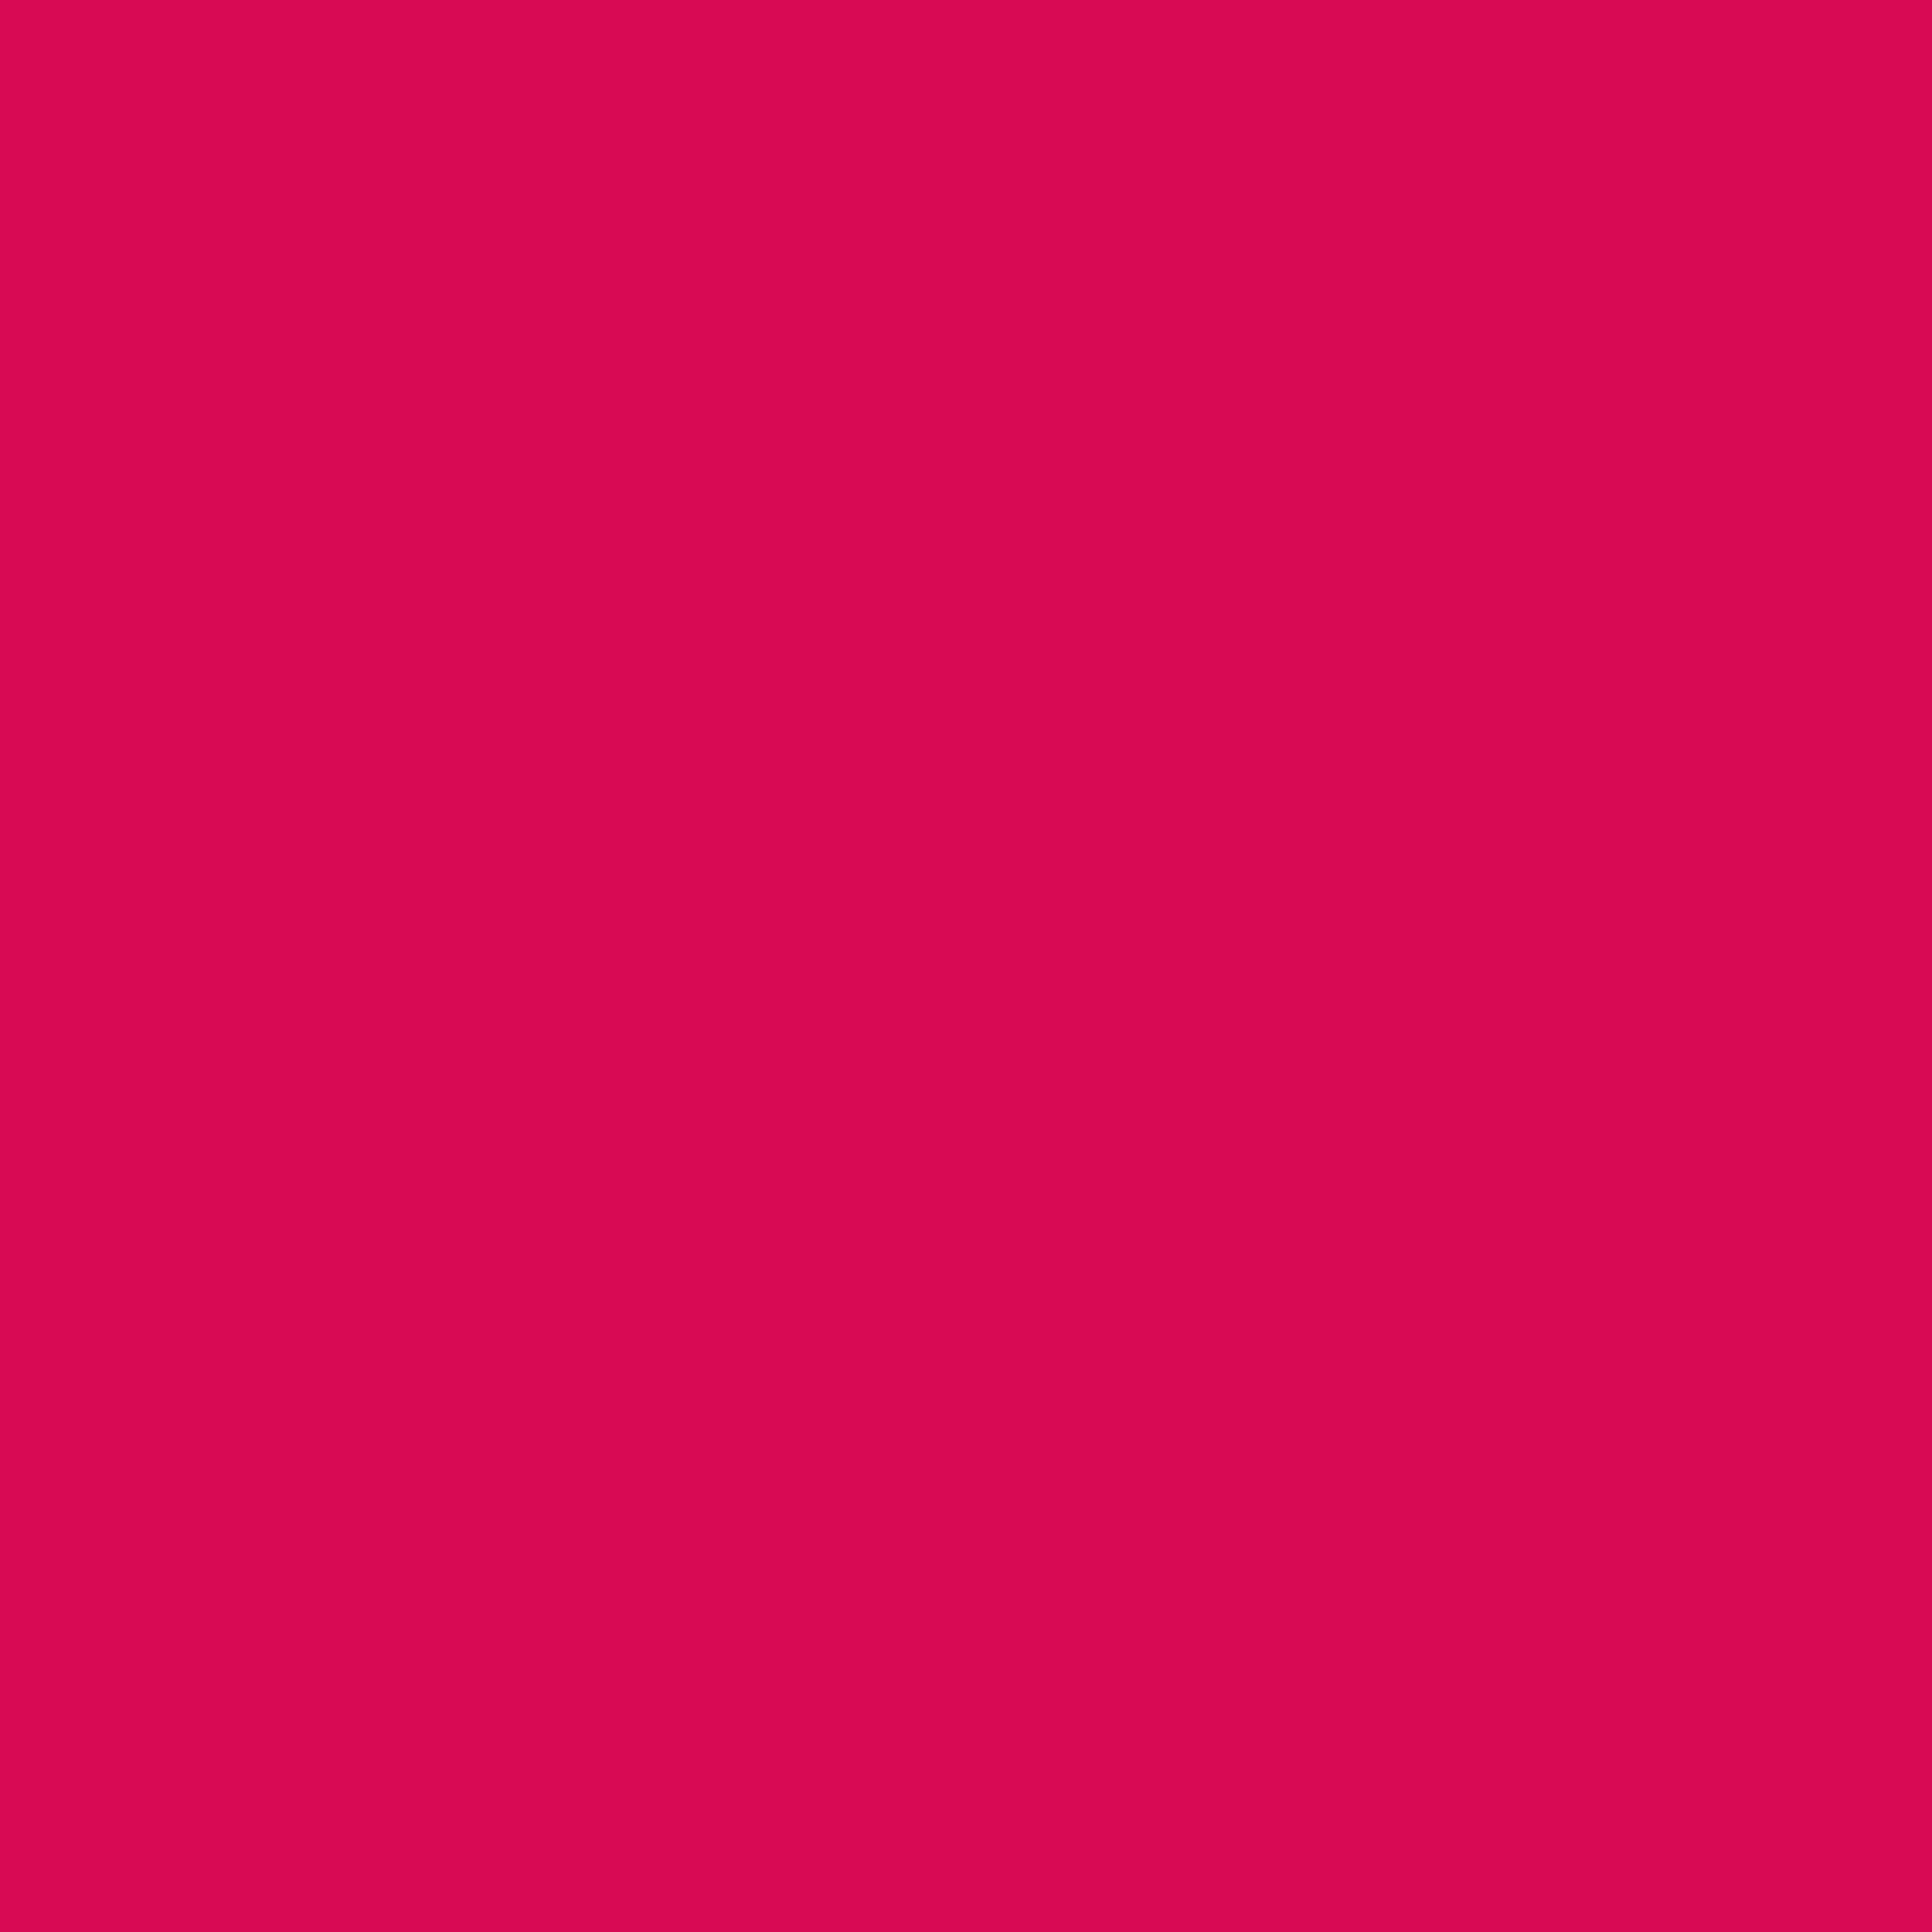 2732x2732 Debian Red Solid Color Background